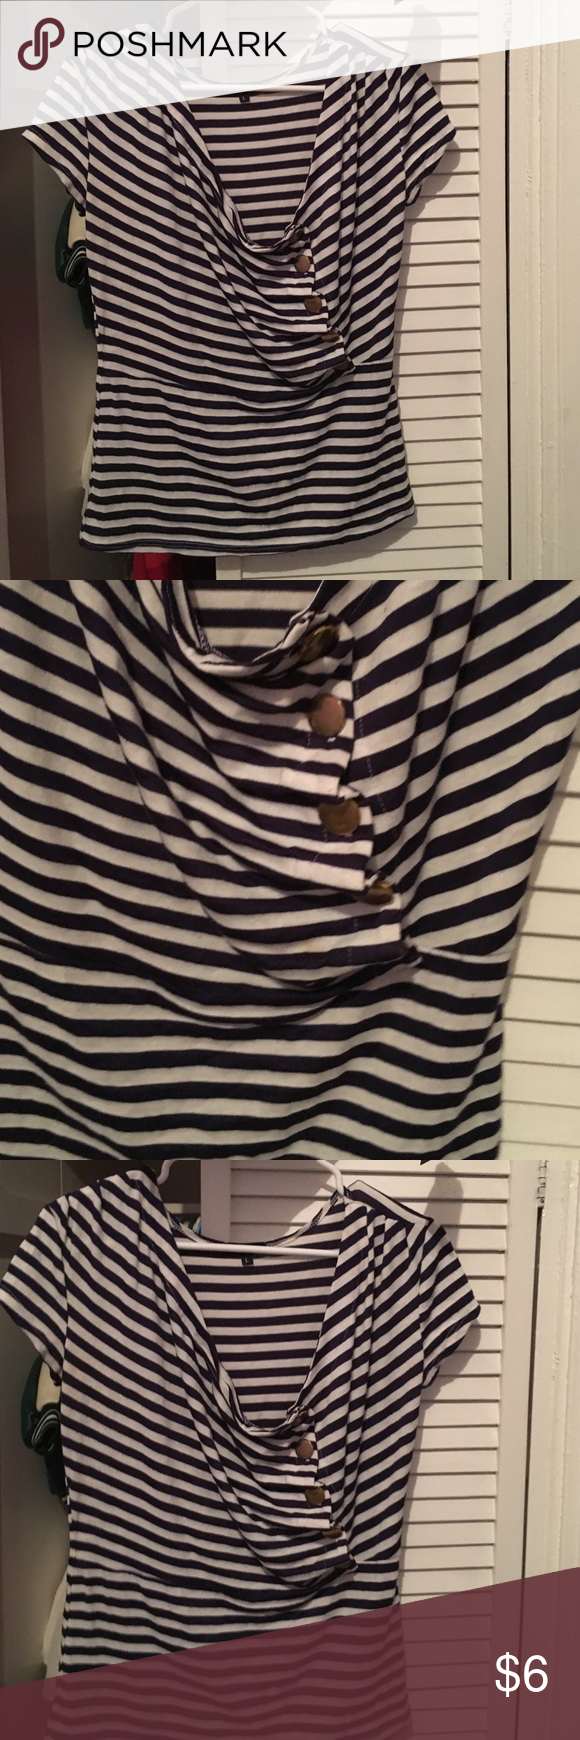 Cute stripe shirt Cute Nautical inspired top. Used. Few lint spots can easily be brushed off. Free with any purchase $25 and up. Large but can also fit an XL nicely. Tops